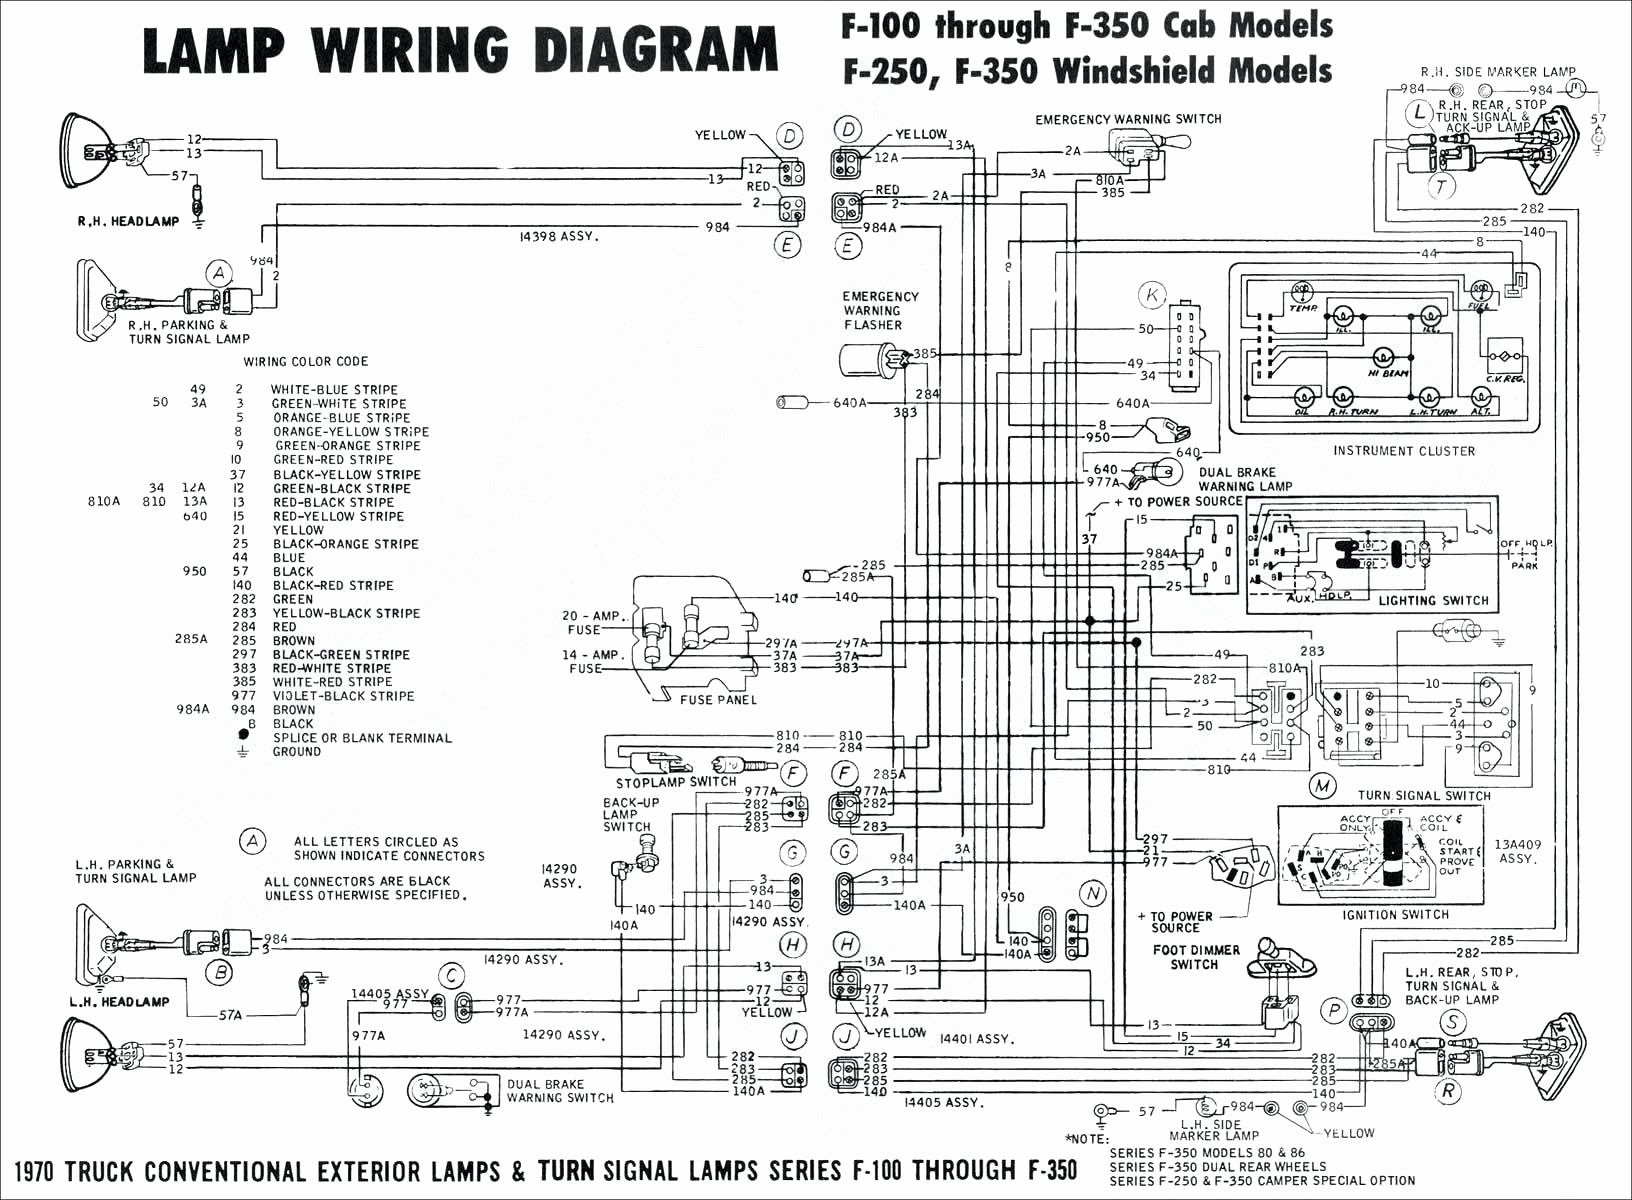 Fabulous Two Way Light Switch Wiring Diagram New Zealand Wiring Diagram Wiring Cloud Hisonuggs Outletorg